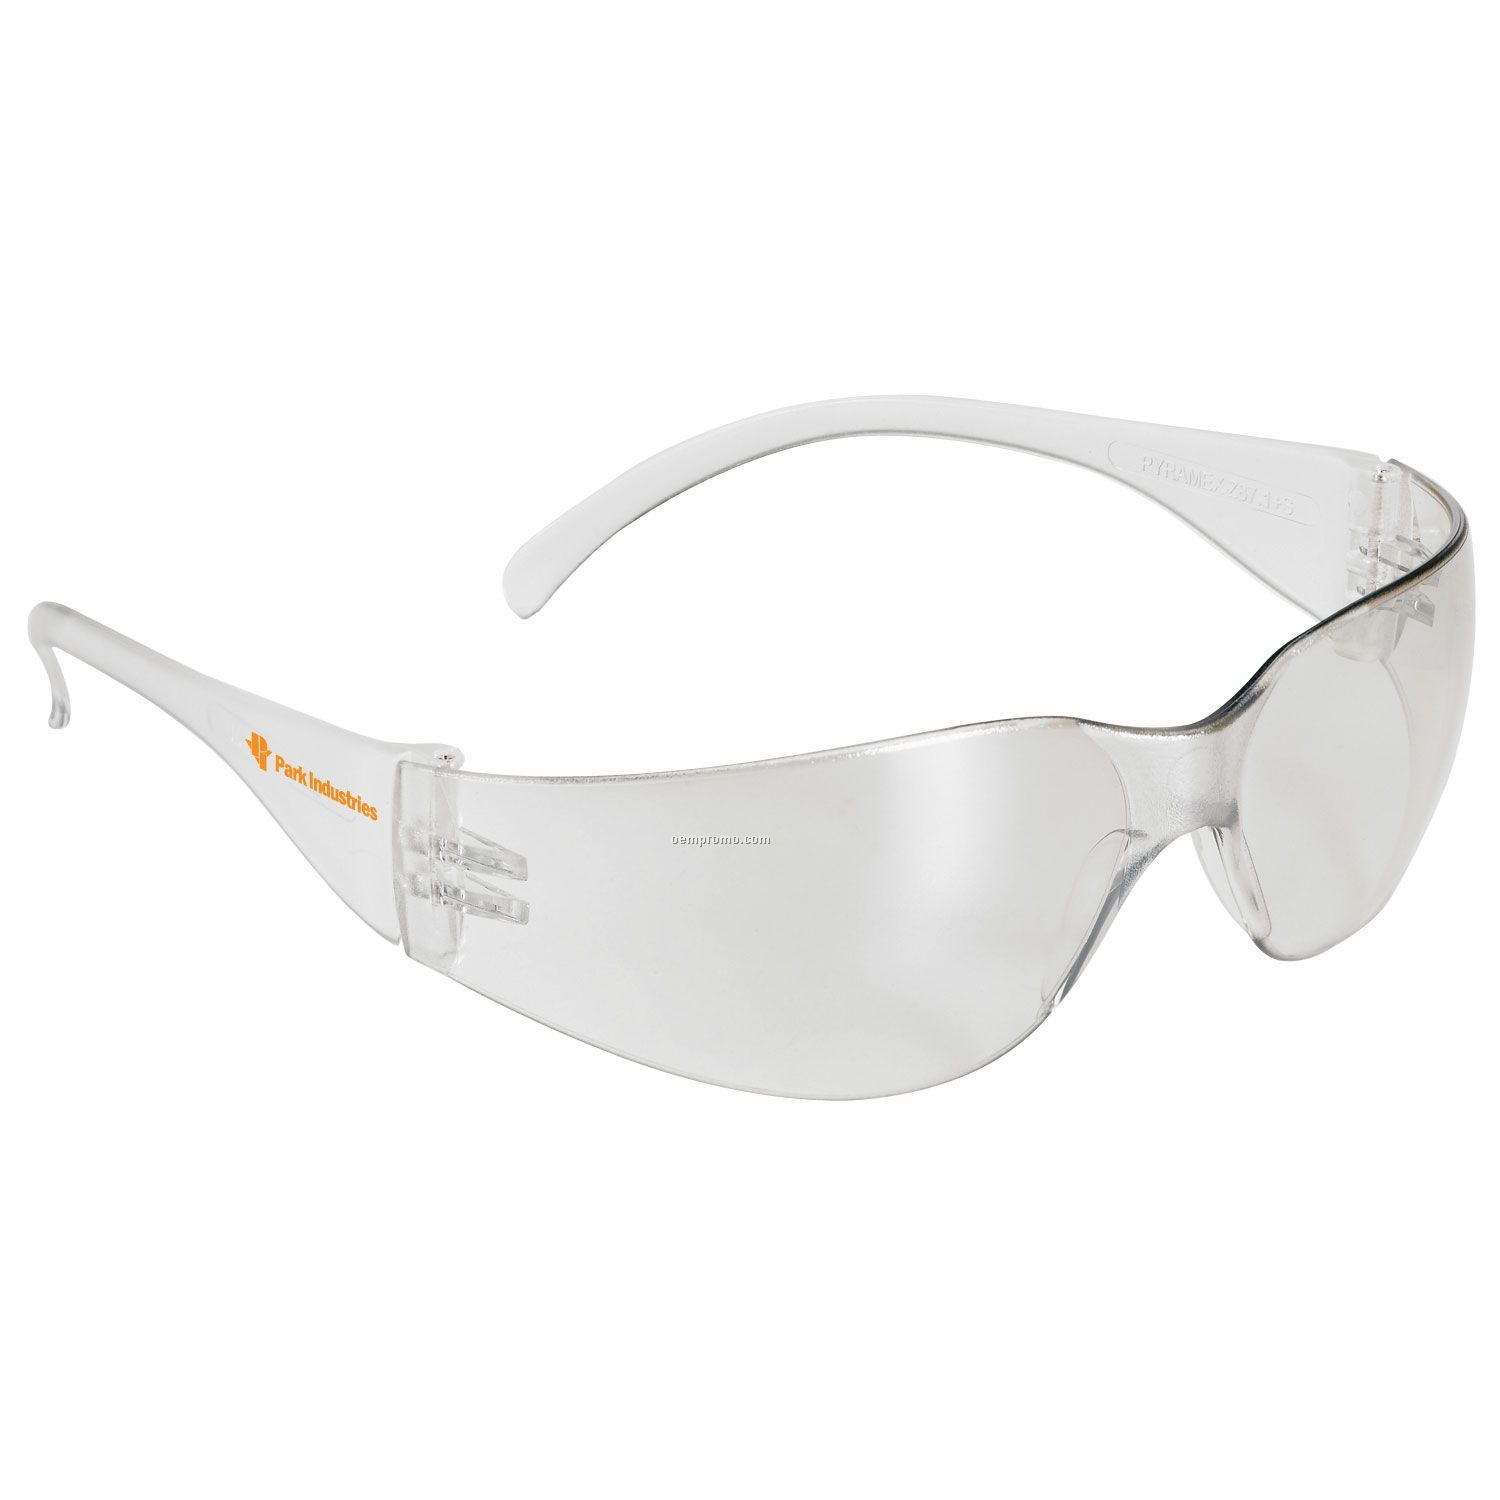 polycarbonate lens temple safety glasses china wholesale